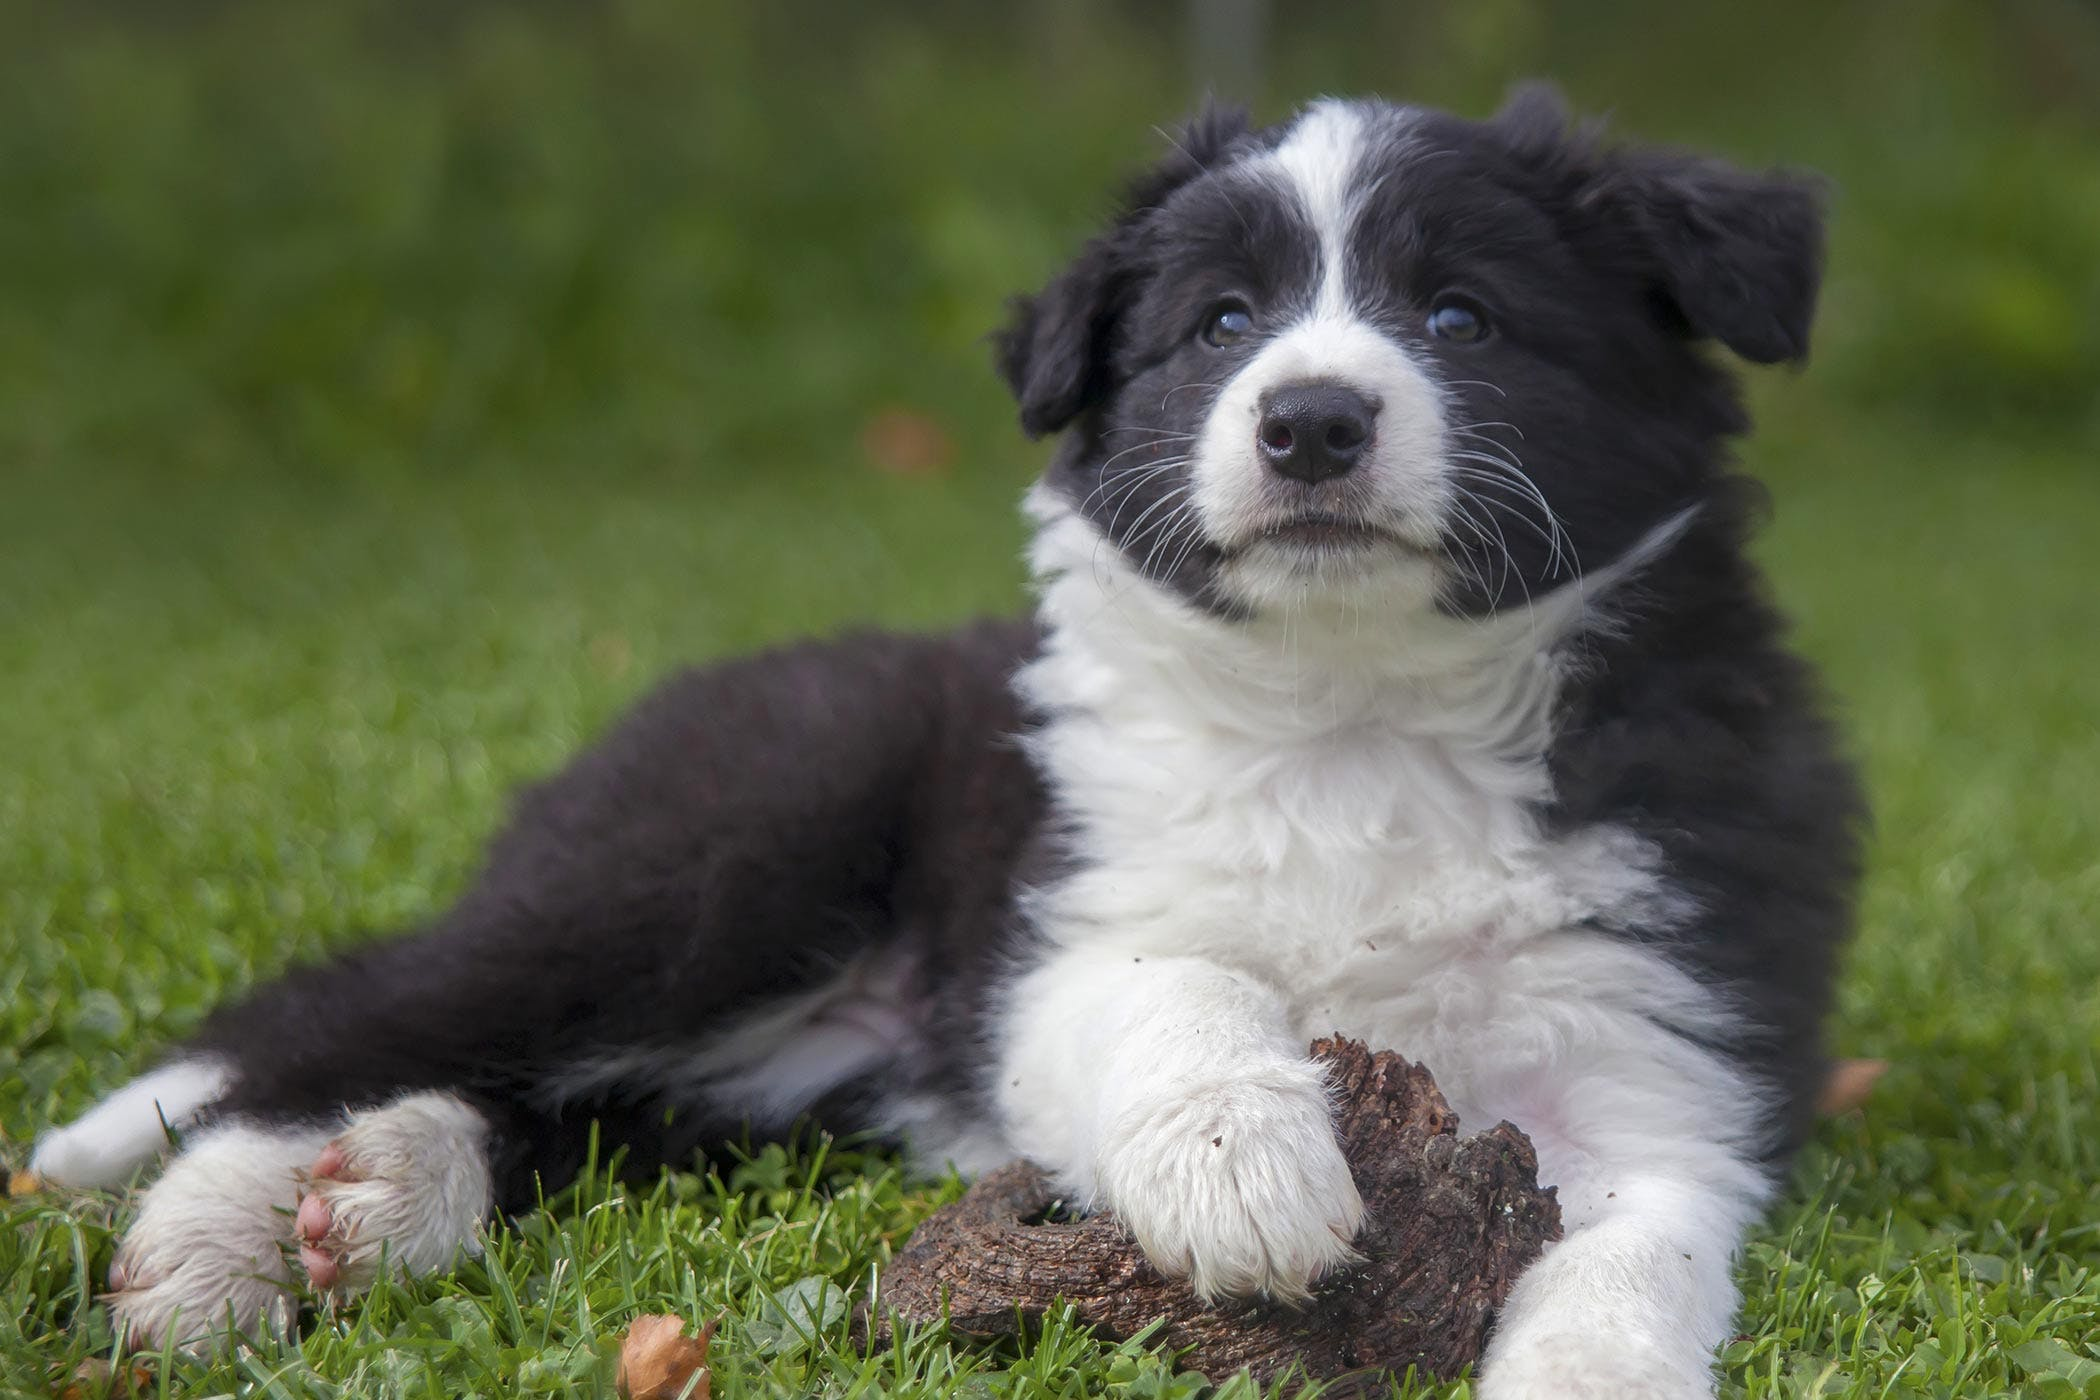 Fatty Tissue Inflammation in Dogs - Symptoms, Causes